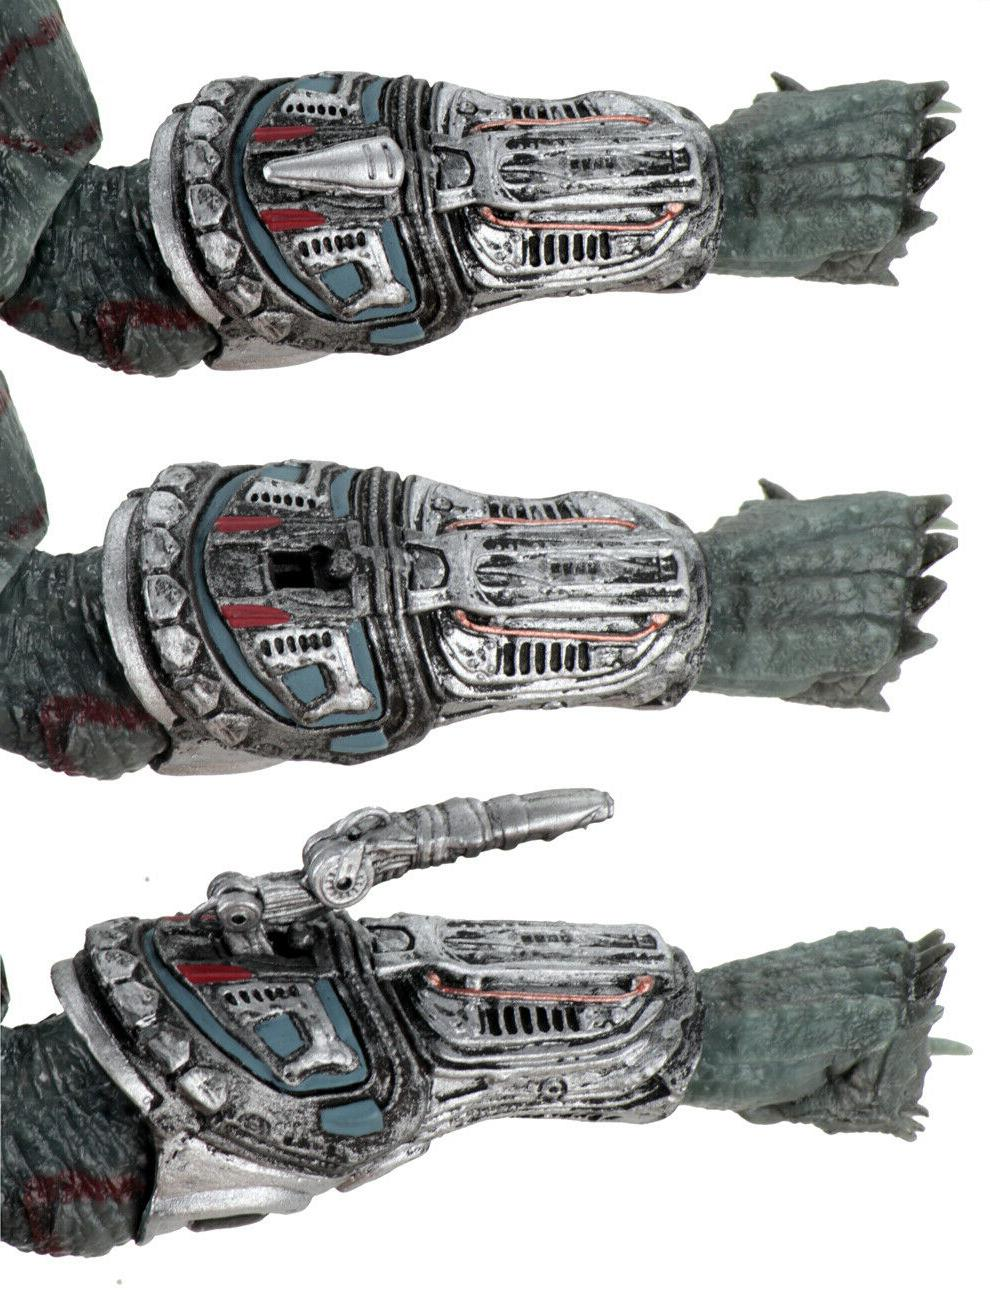 NECA Armored Assassin 2018 Scale Action